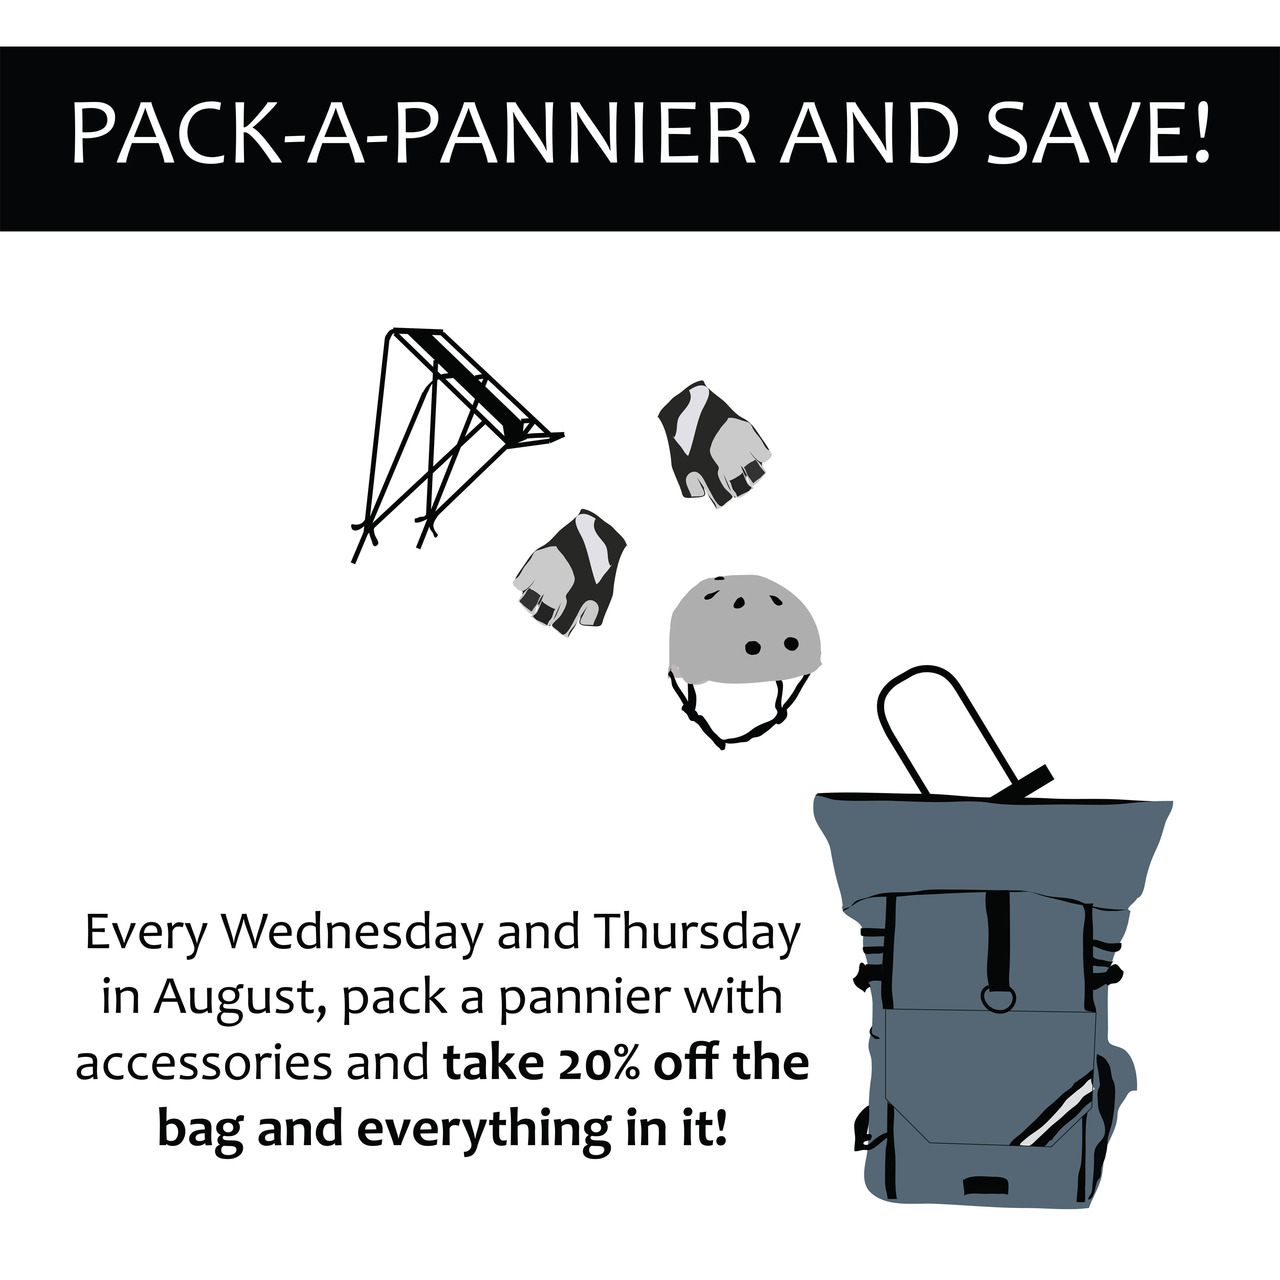 Biking Portlanders -  we're  having a cool special in August. If you have been meaning to get panniers, or cooler panniers, or more panniers, or panniers filled with tons and tons of bike crap, now's the time.    Non-biking Portlanders - panniers fit really well inside car trunks, speedboats, motorcycle helmets, and segway GPS systems.